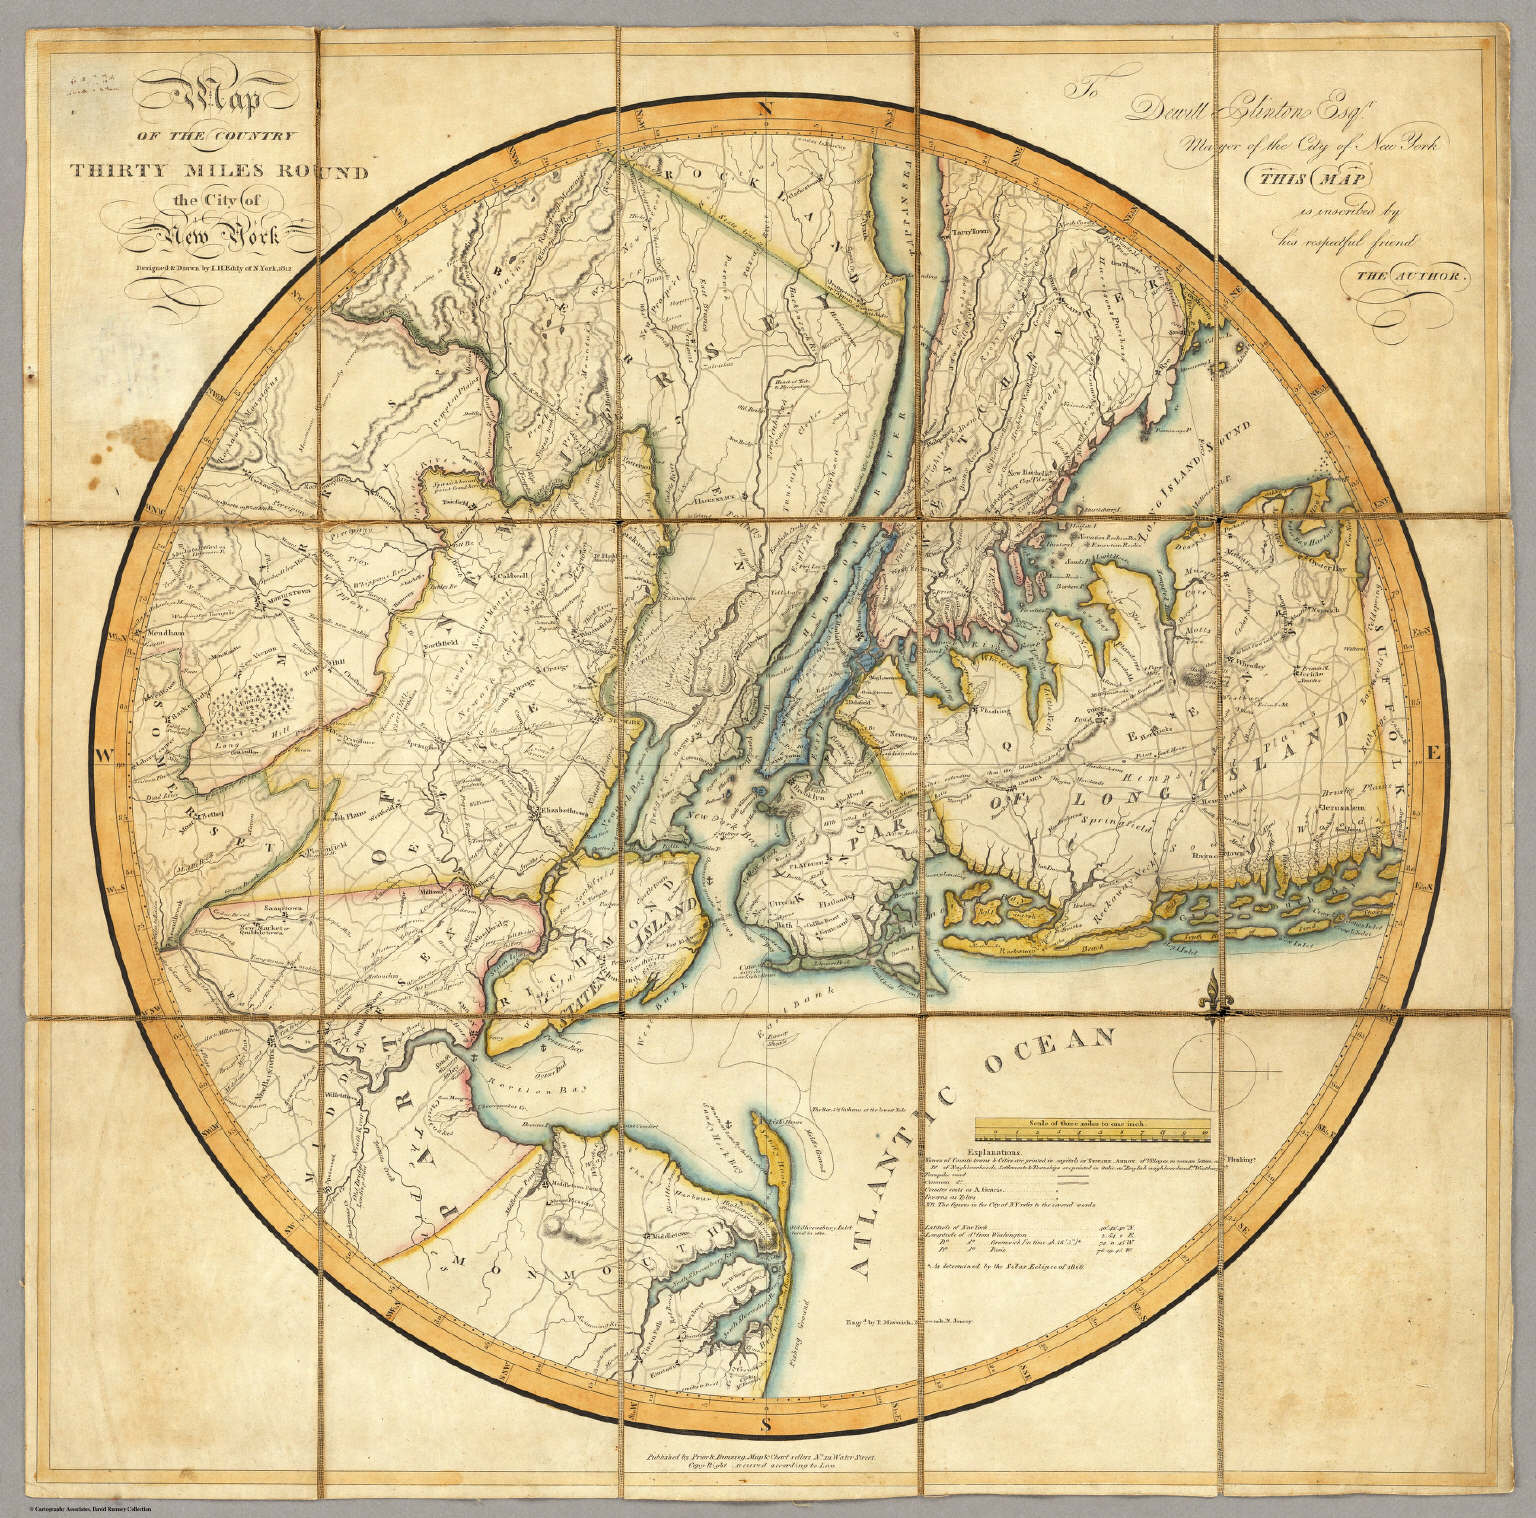 Map Of The Country Thirty Miles Round the City of New York.